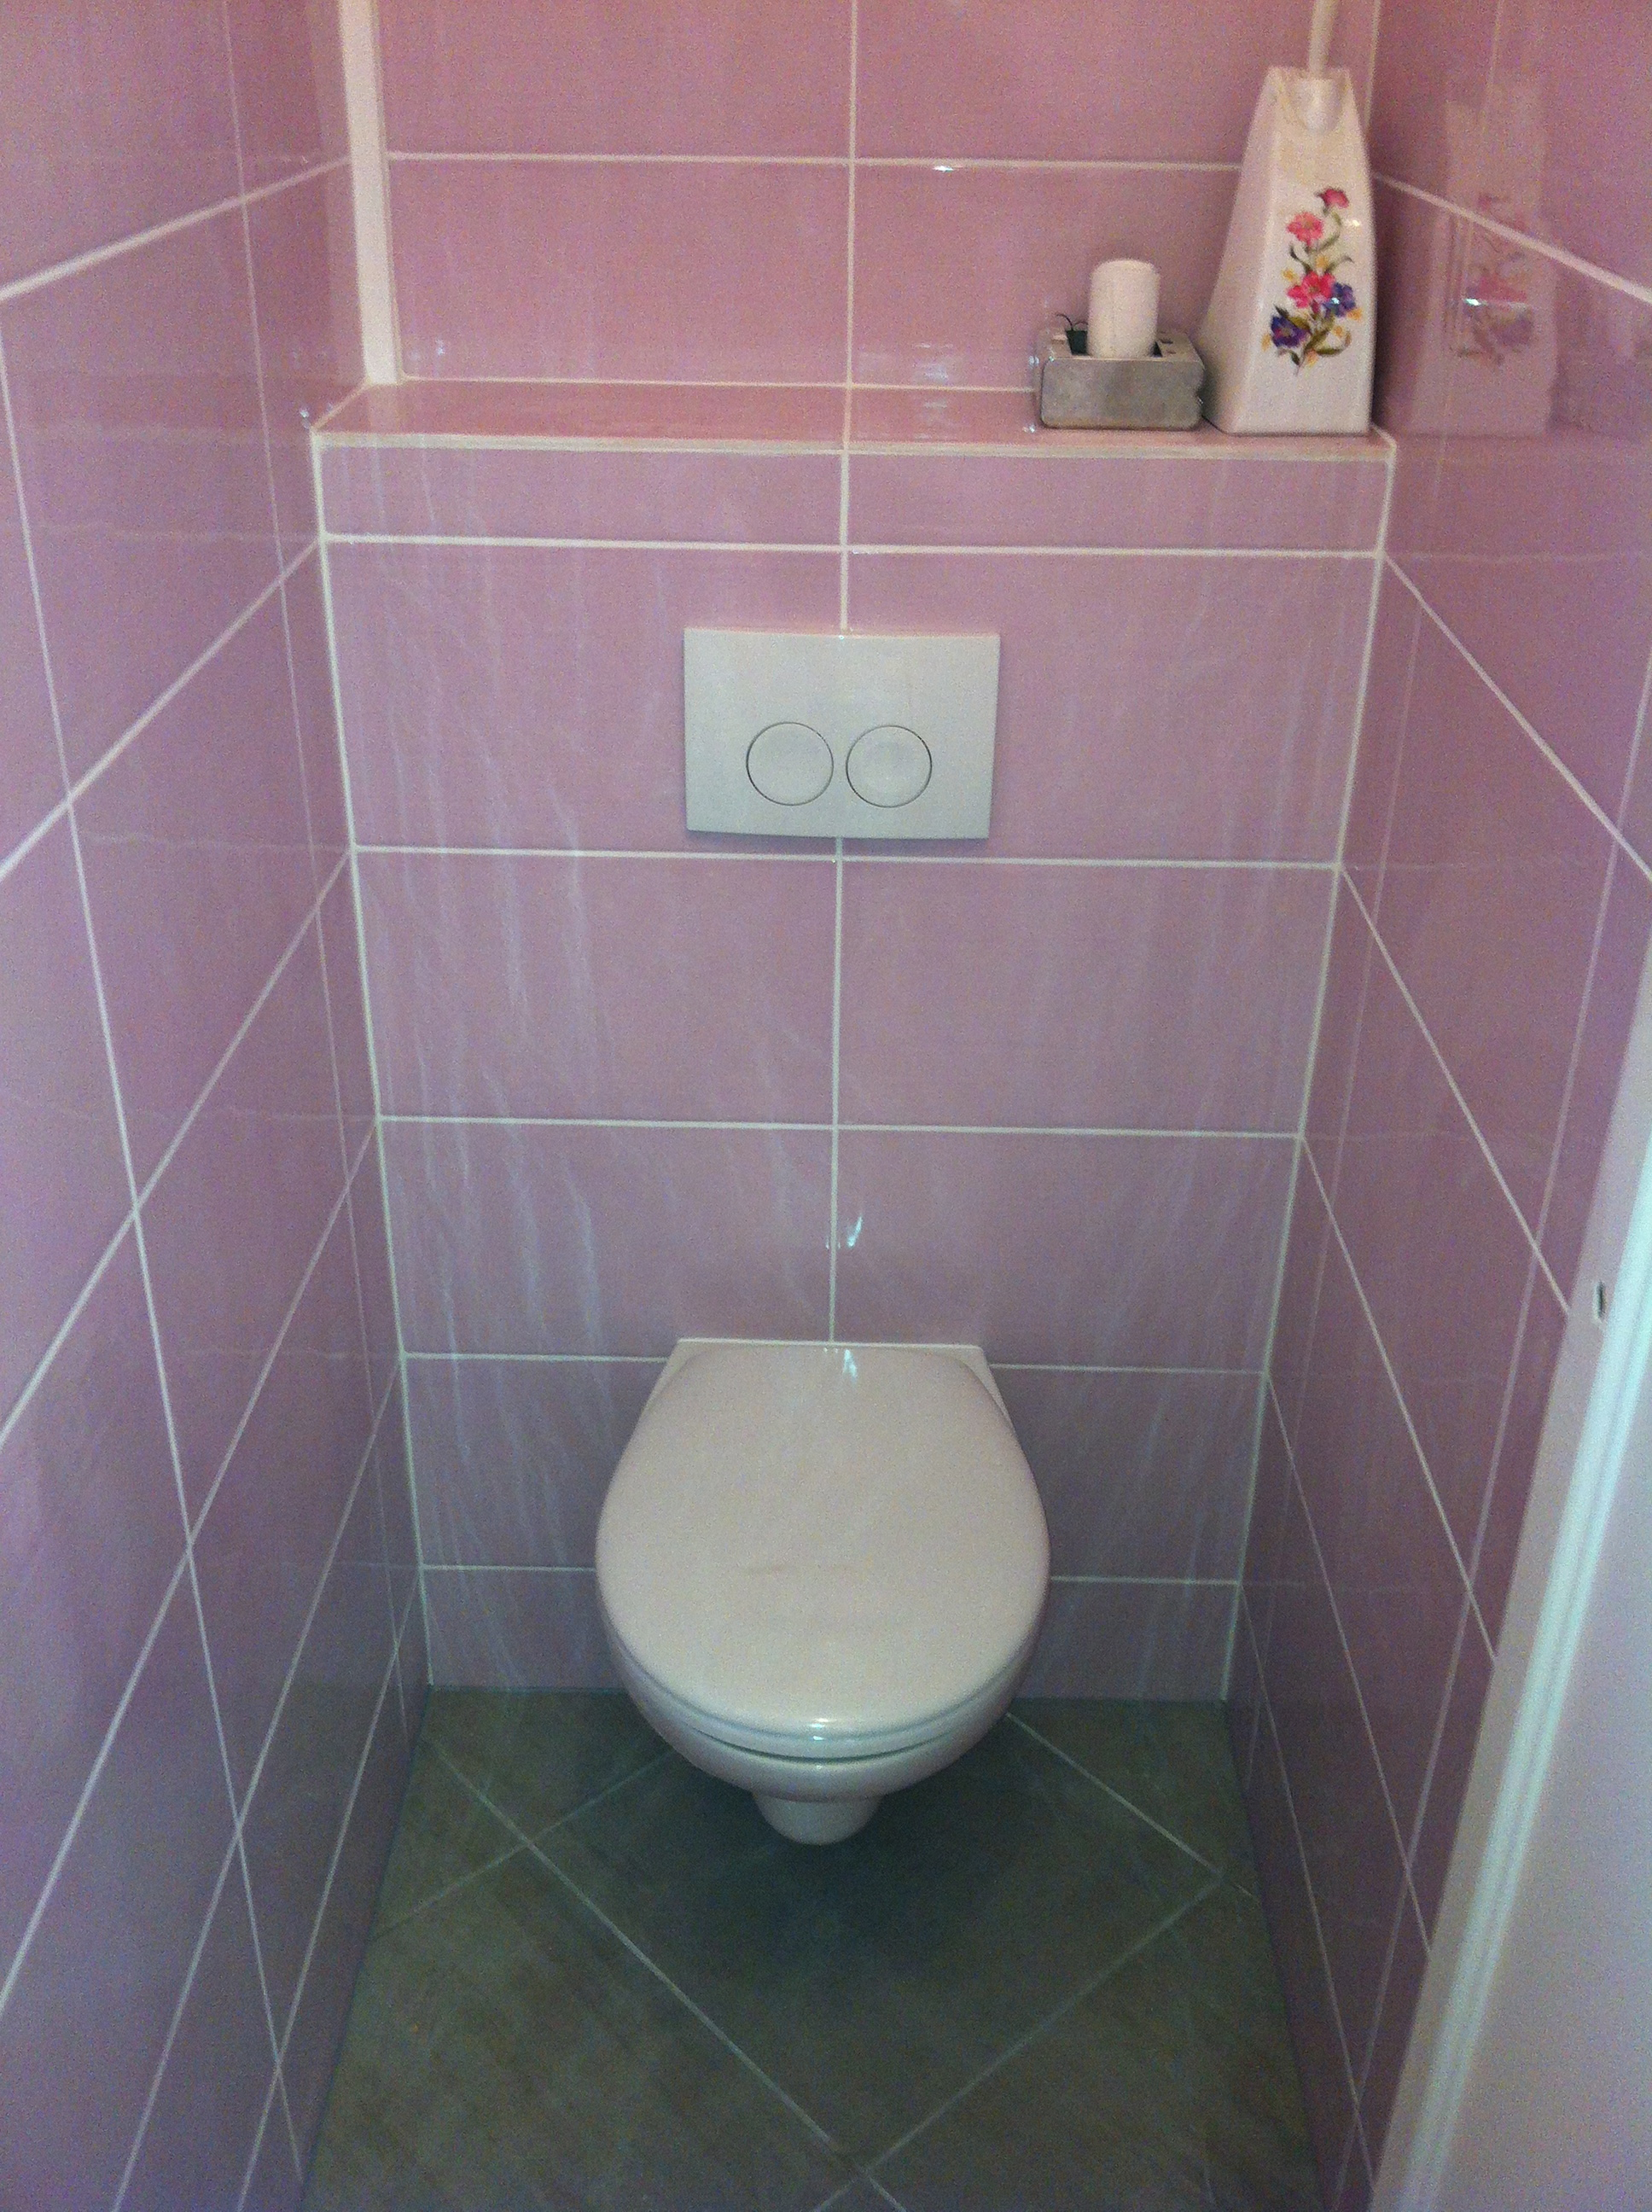 Wc suspendu wc encastr dream house - Modele de carrelage pour wc ...